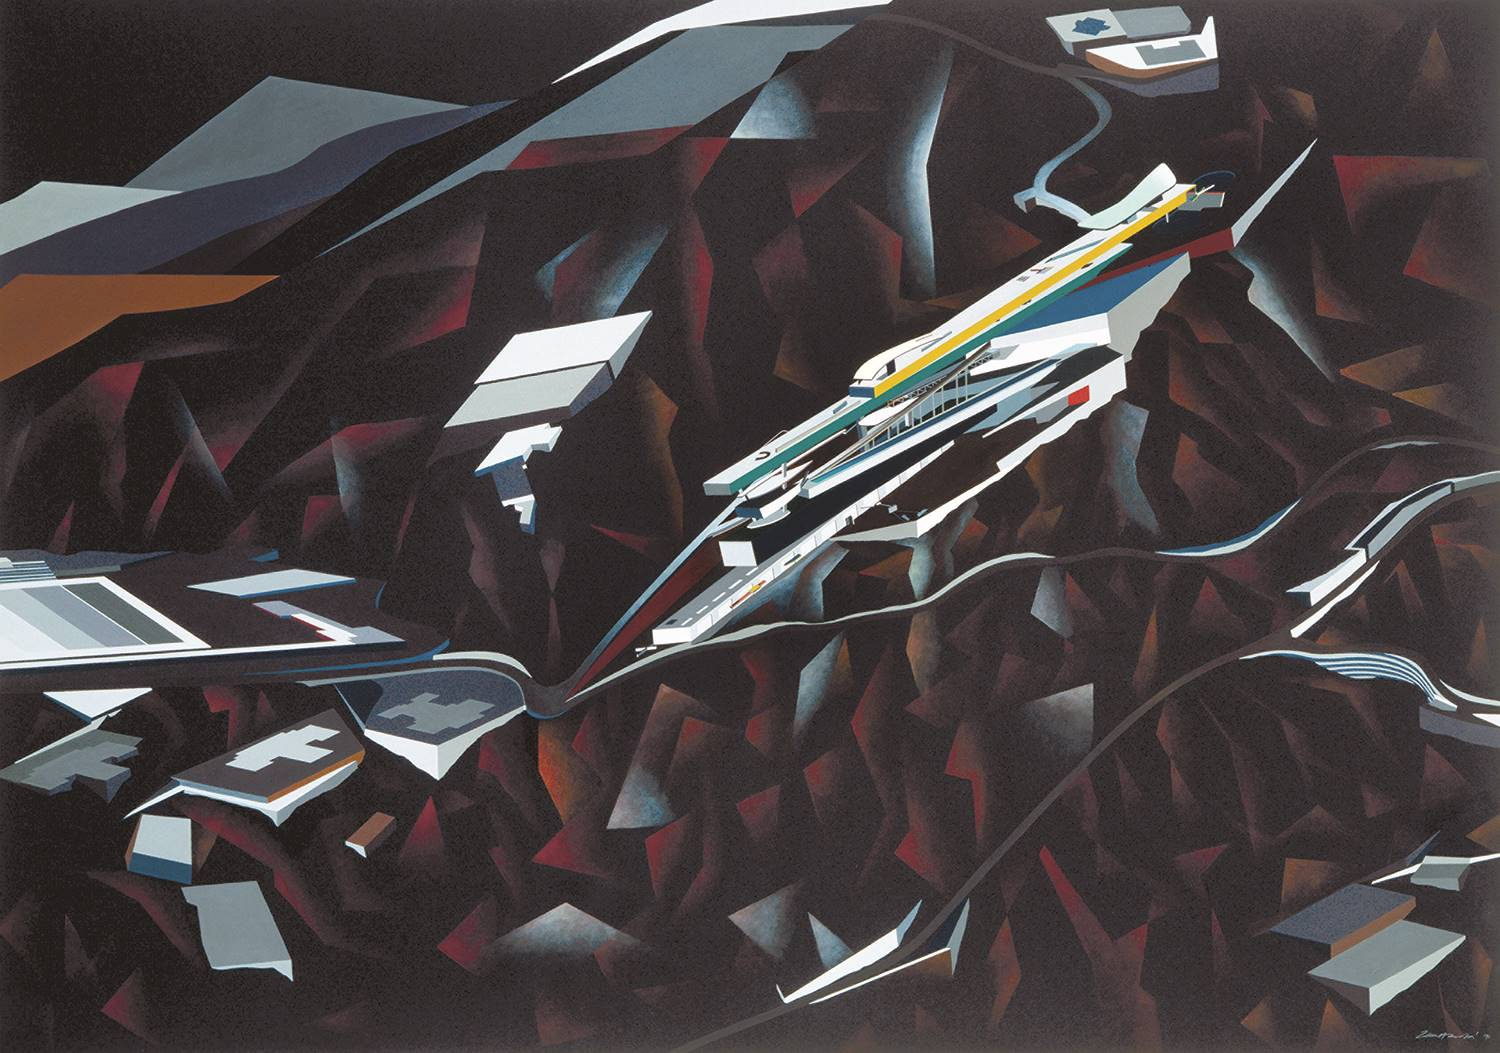 Zaha Hadid, Leisure Club, 1982.